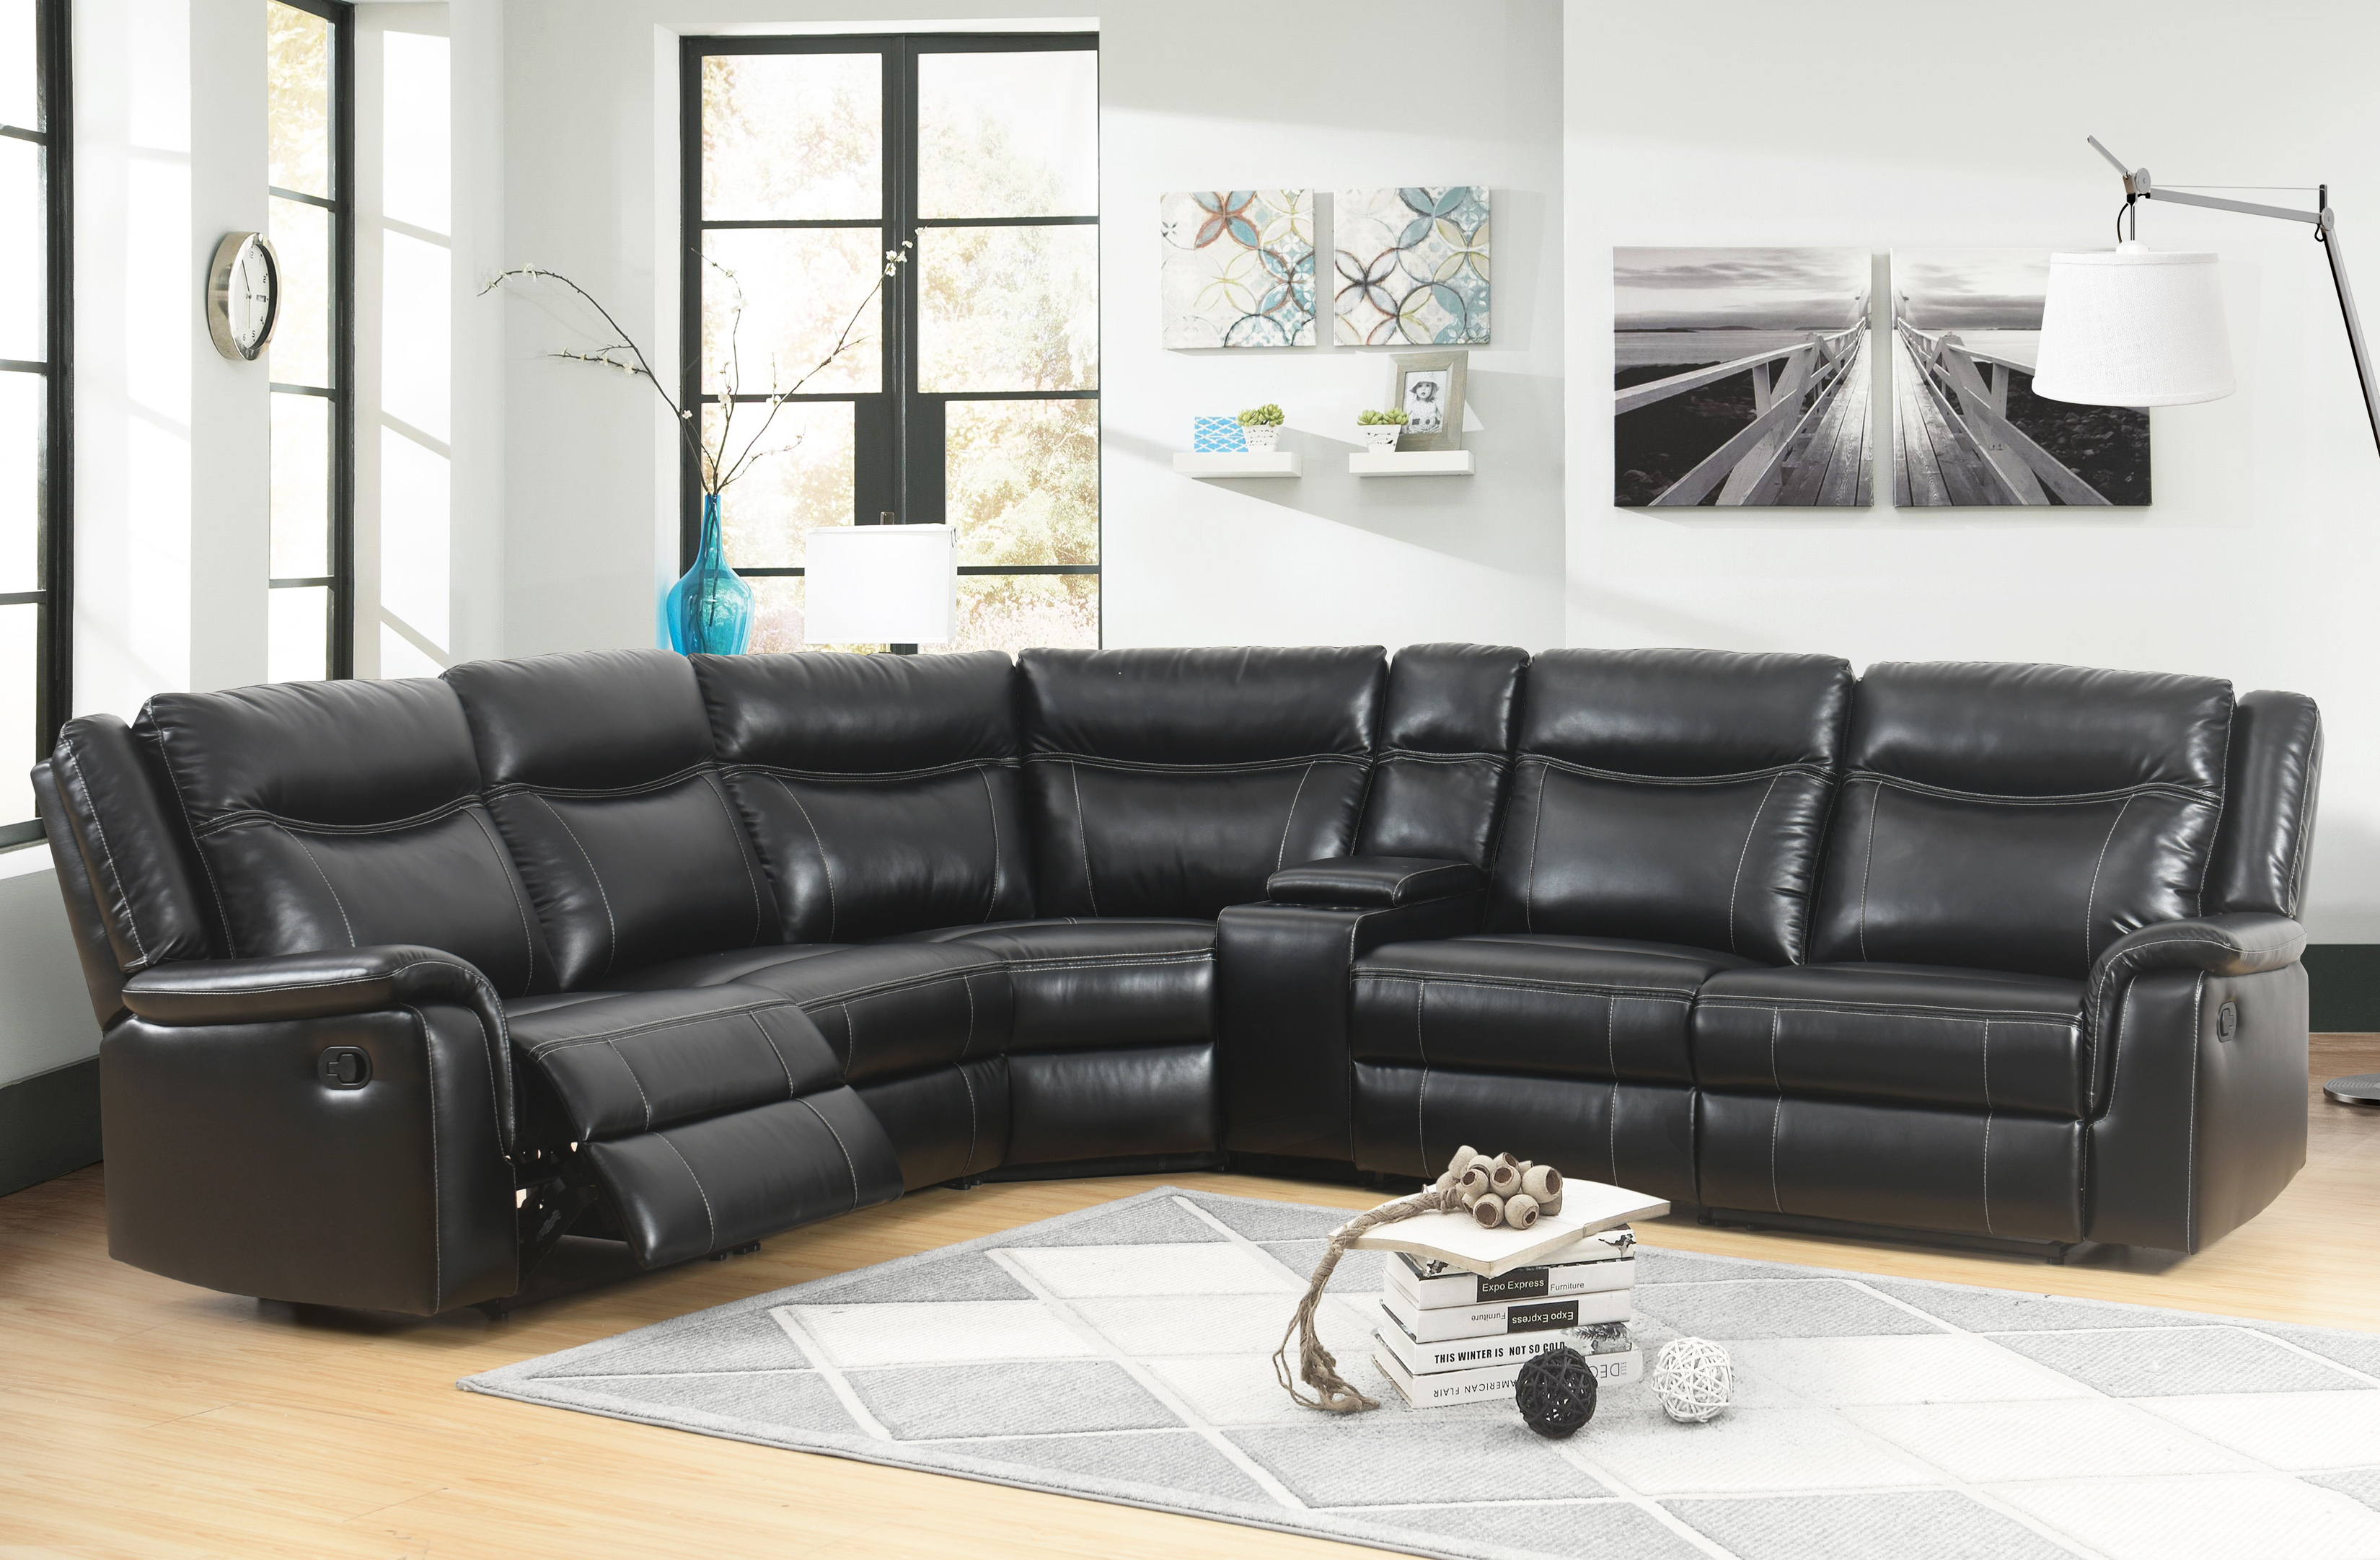 devon claire eve black reclining sectional w console 6 piece